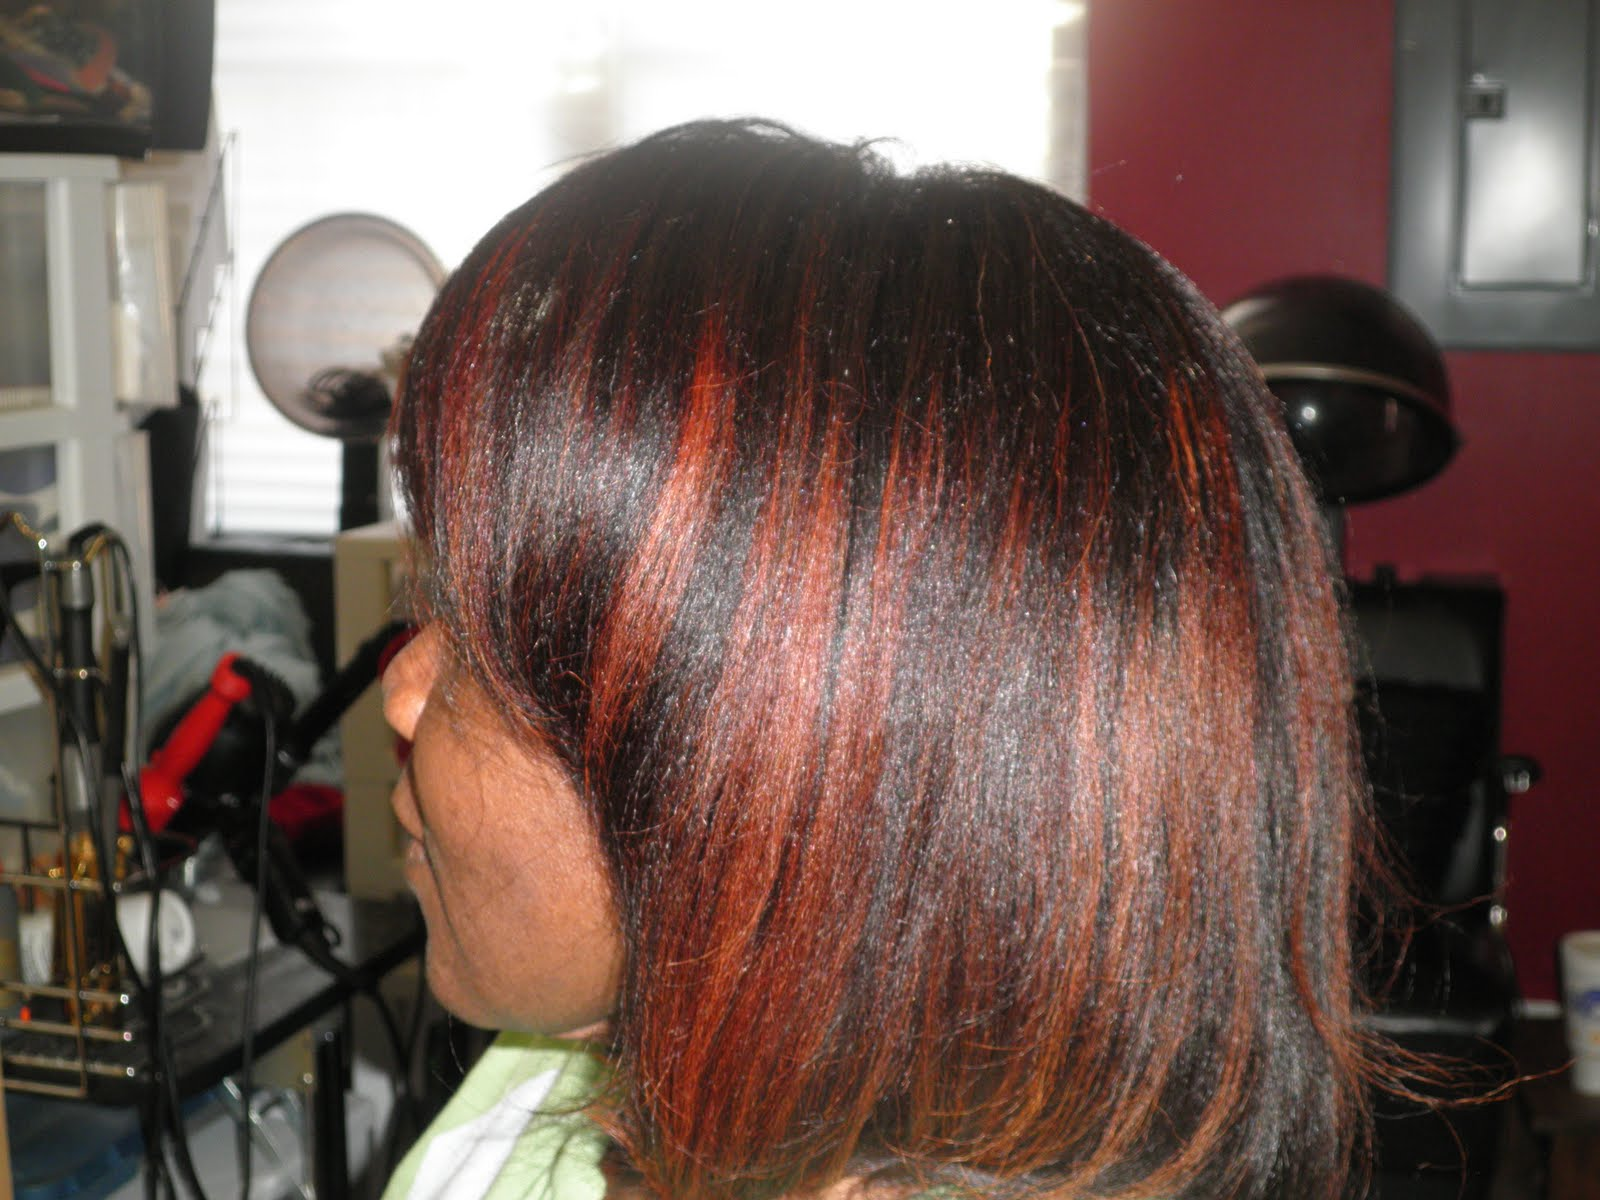 Phenomenalhaircare the color bath benita blockers version as promised pictured is my previously highlighted client with my version of the new color bath i used nairobi semi permanent cocktail of sierra brown nvjuhfo Choice Image